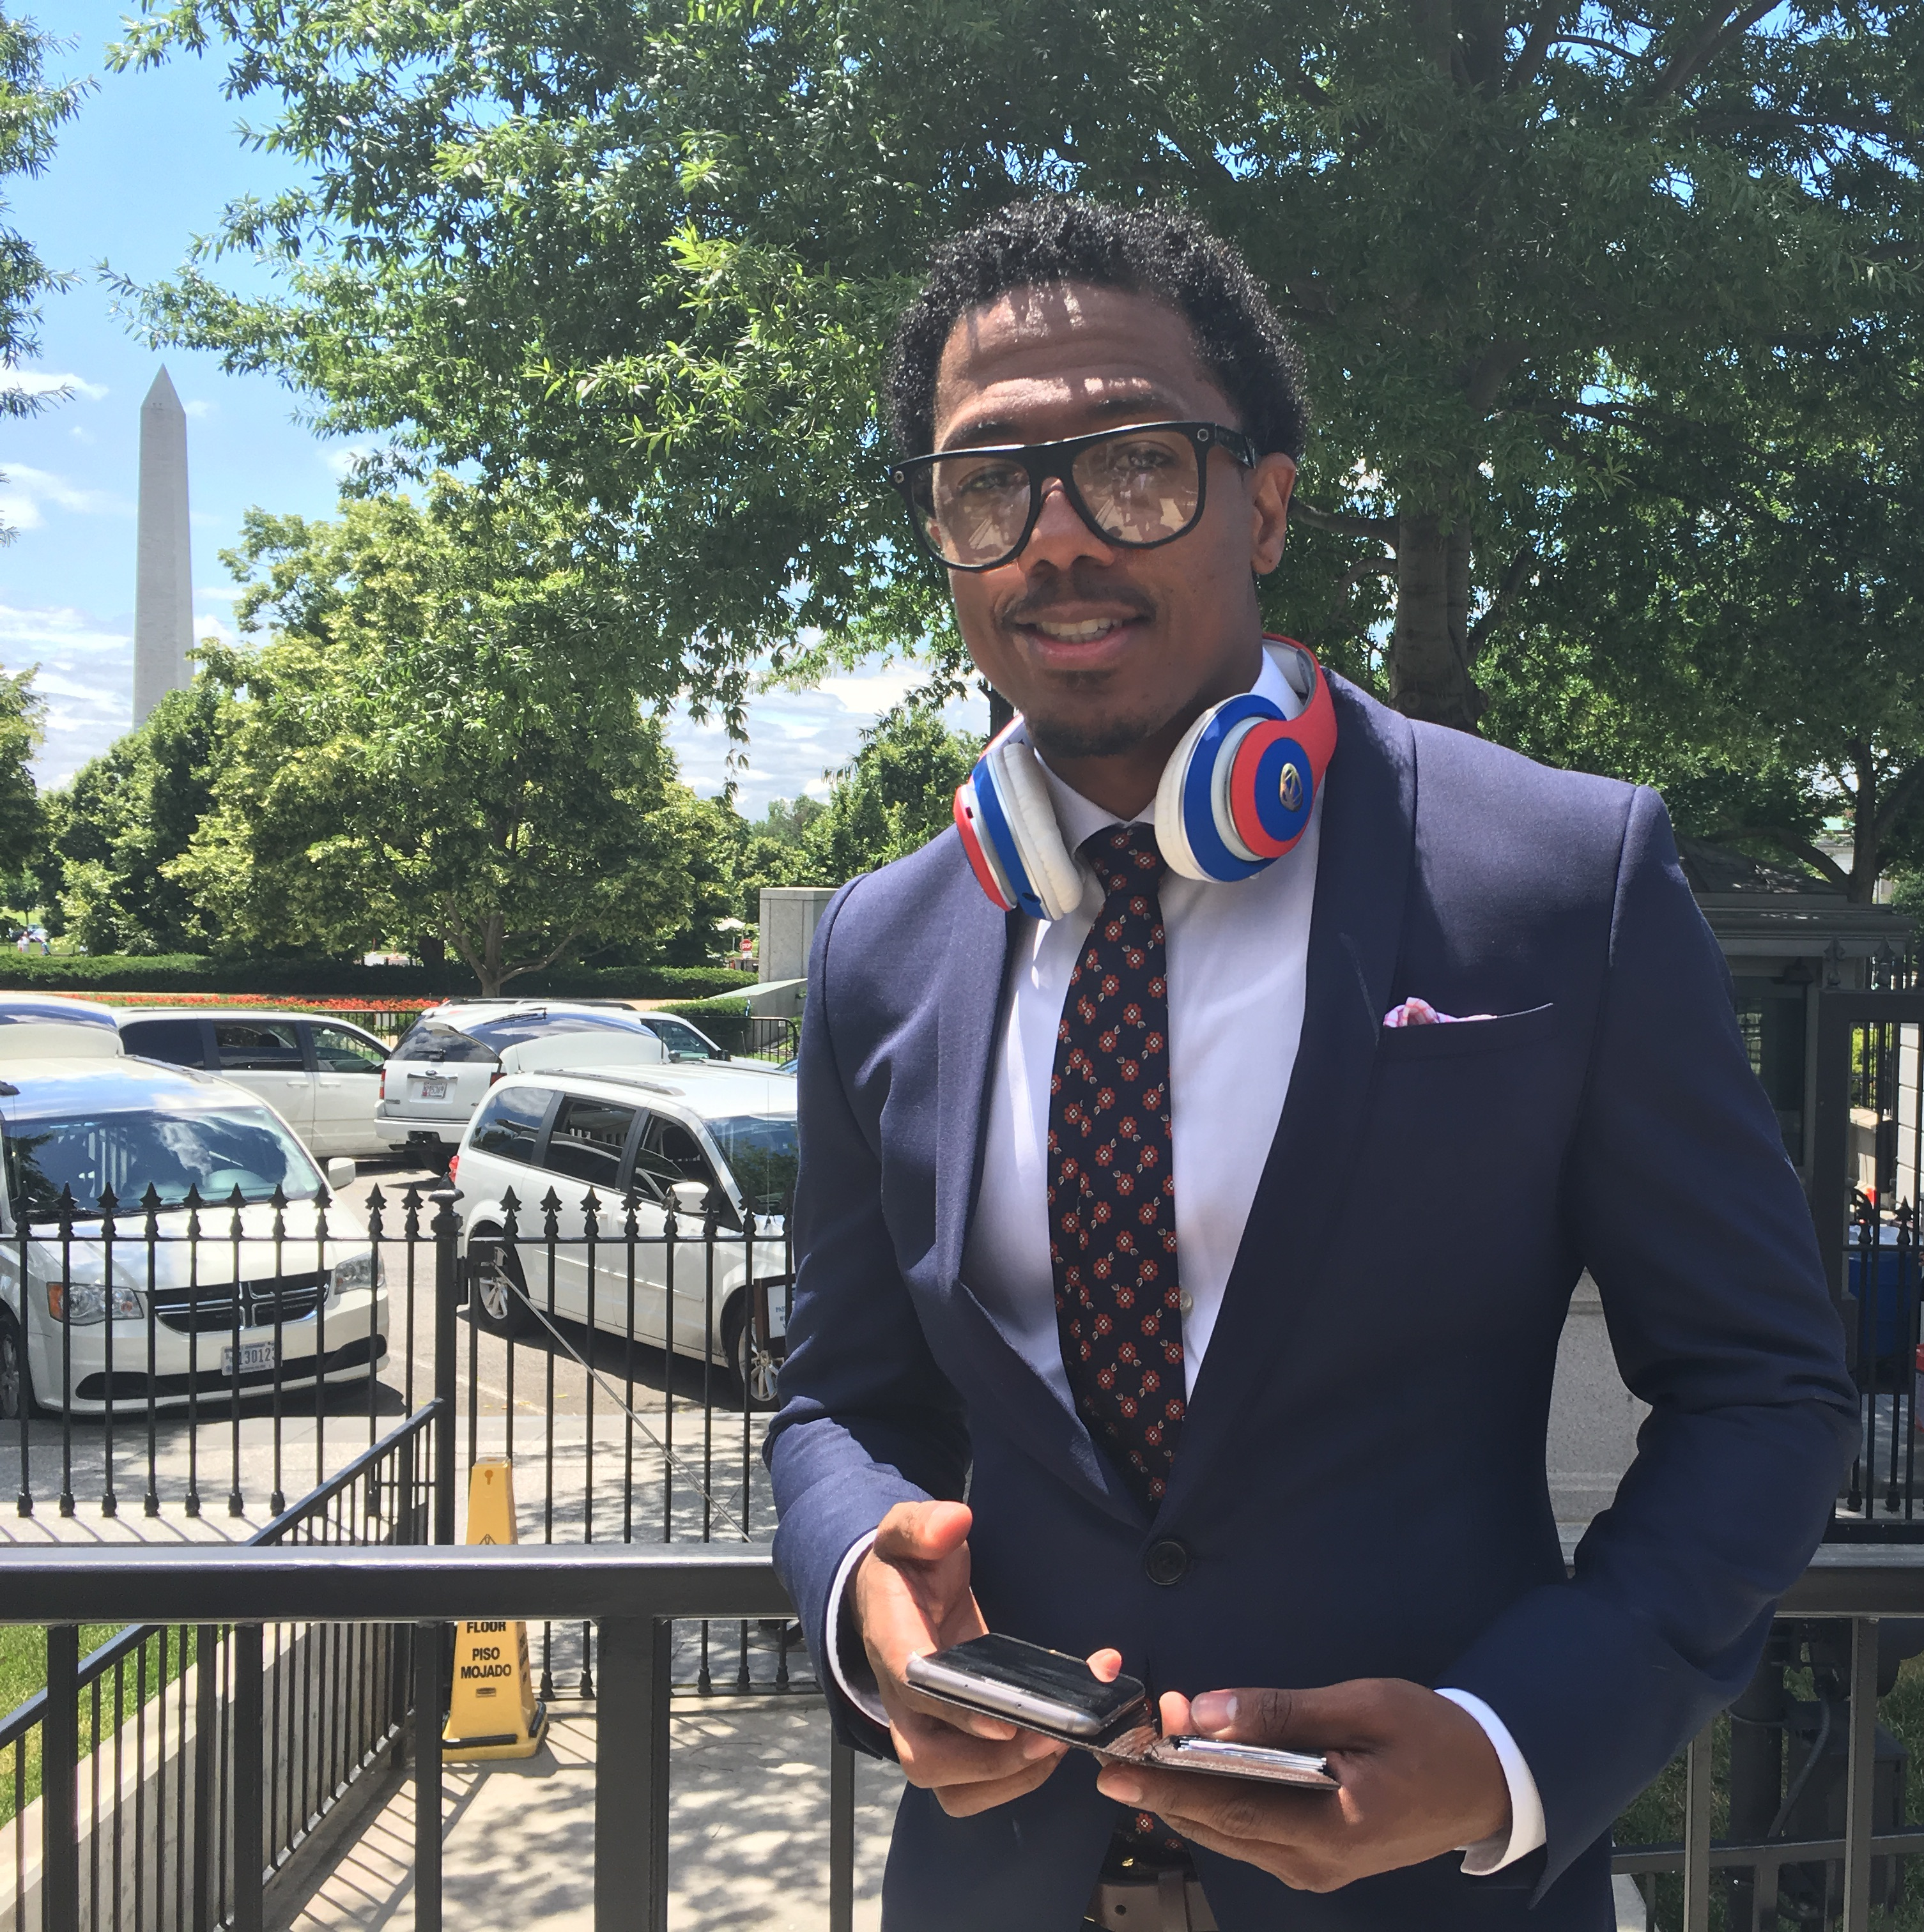 d5454c09bc6 Nick Cannon & RadioShack Make Your 4th of July Ncredible with Limited  Edition Headphones